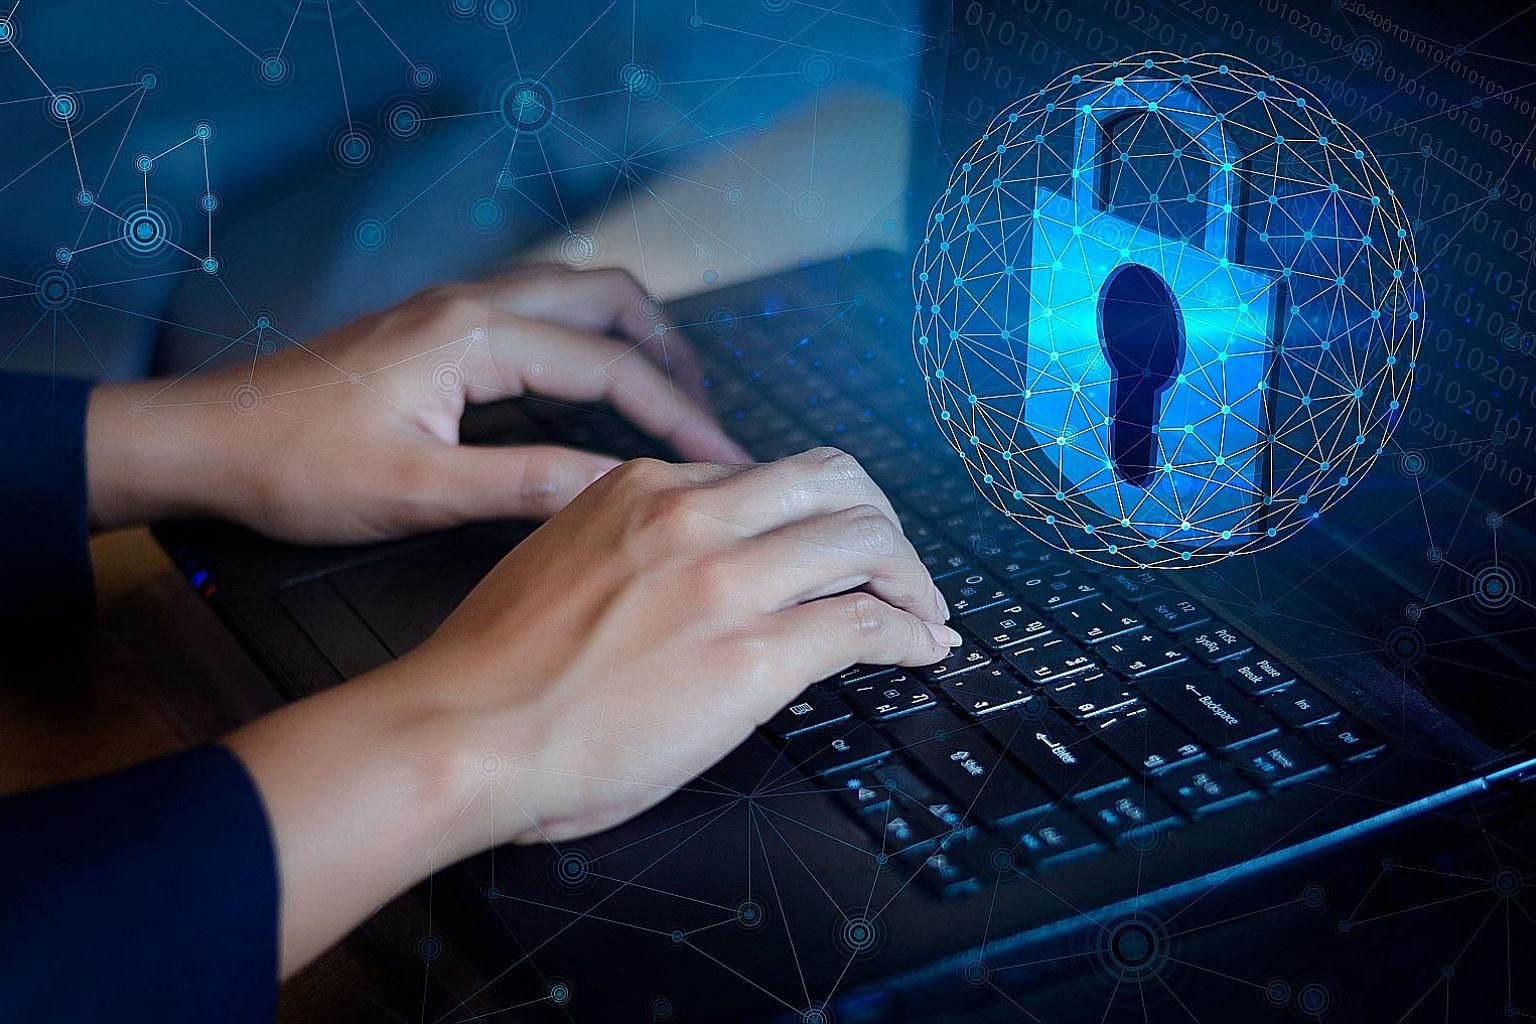 """The vulnerabilities overlooked by software company Learnaholic in a school's attendance system could have been """"reasonably averted"""", said the Personal Data Protection Commission. PHOTO: ISTOCKPHOTO"""